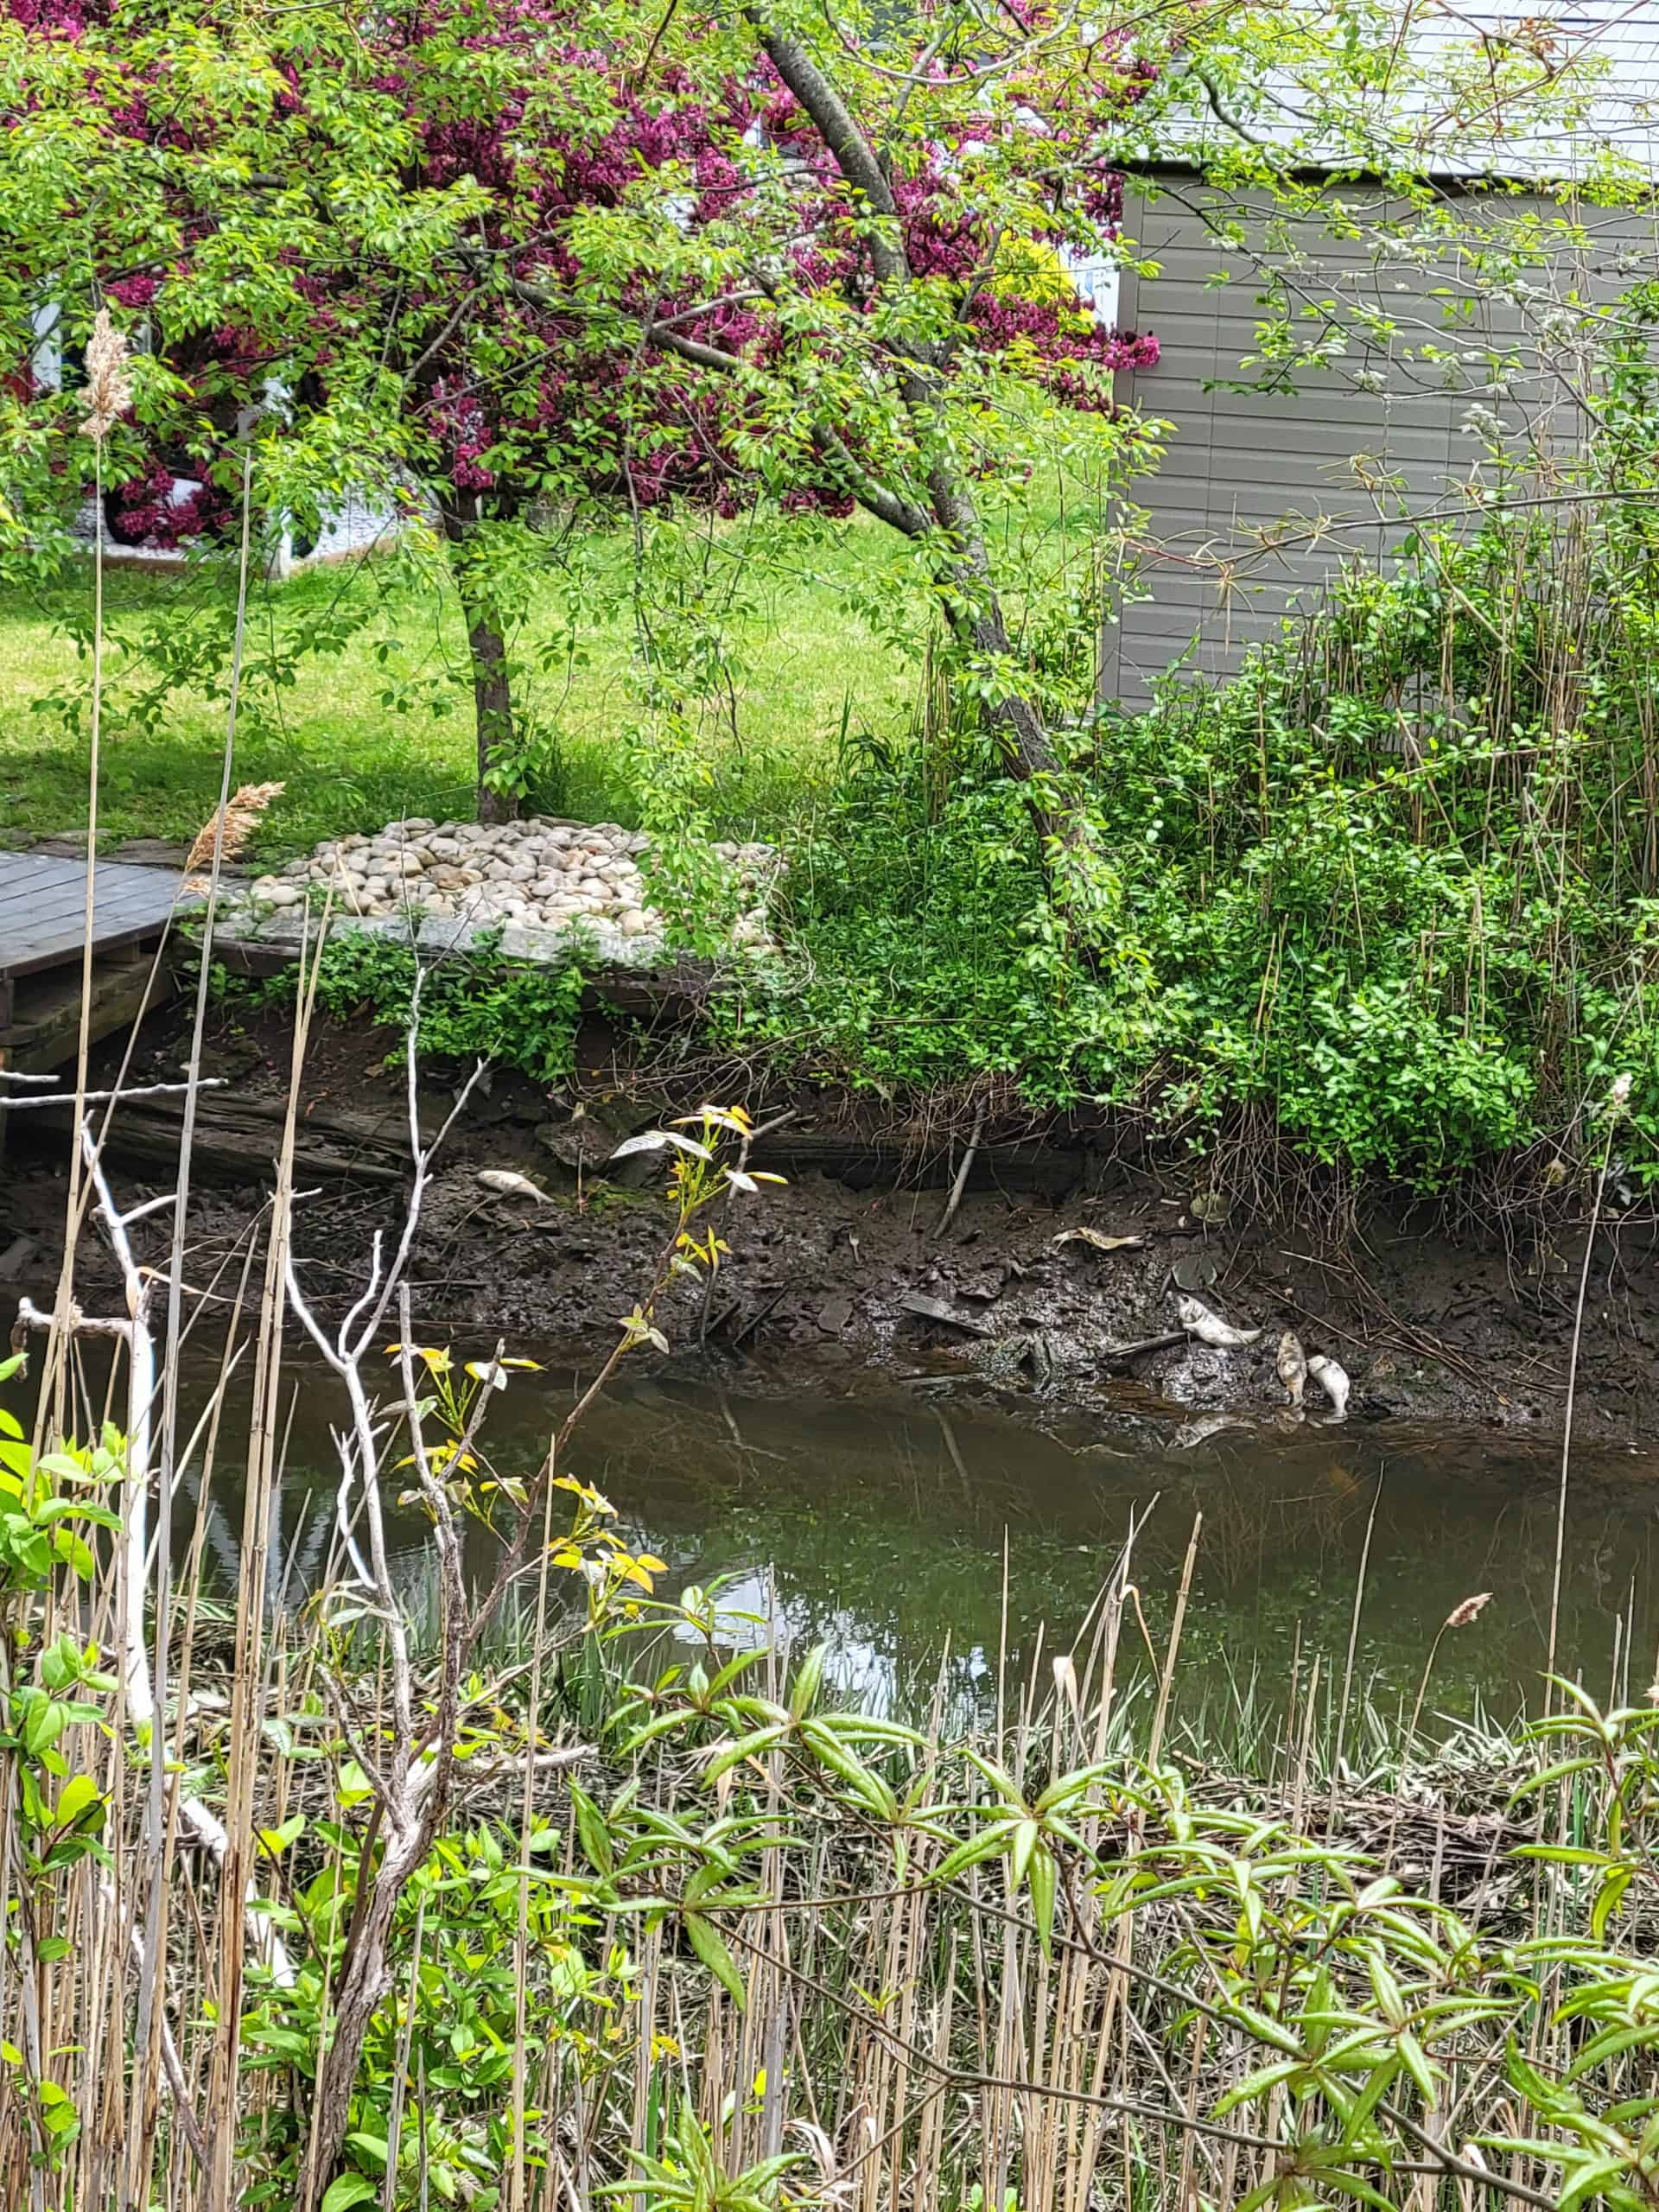 a manicured back yard stands on the bank of a tidal creek. Clumps of dead fish lie at the waterline